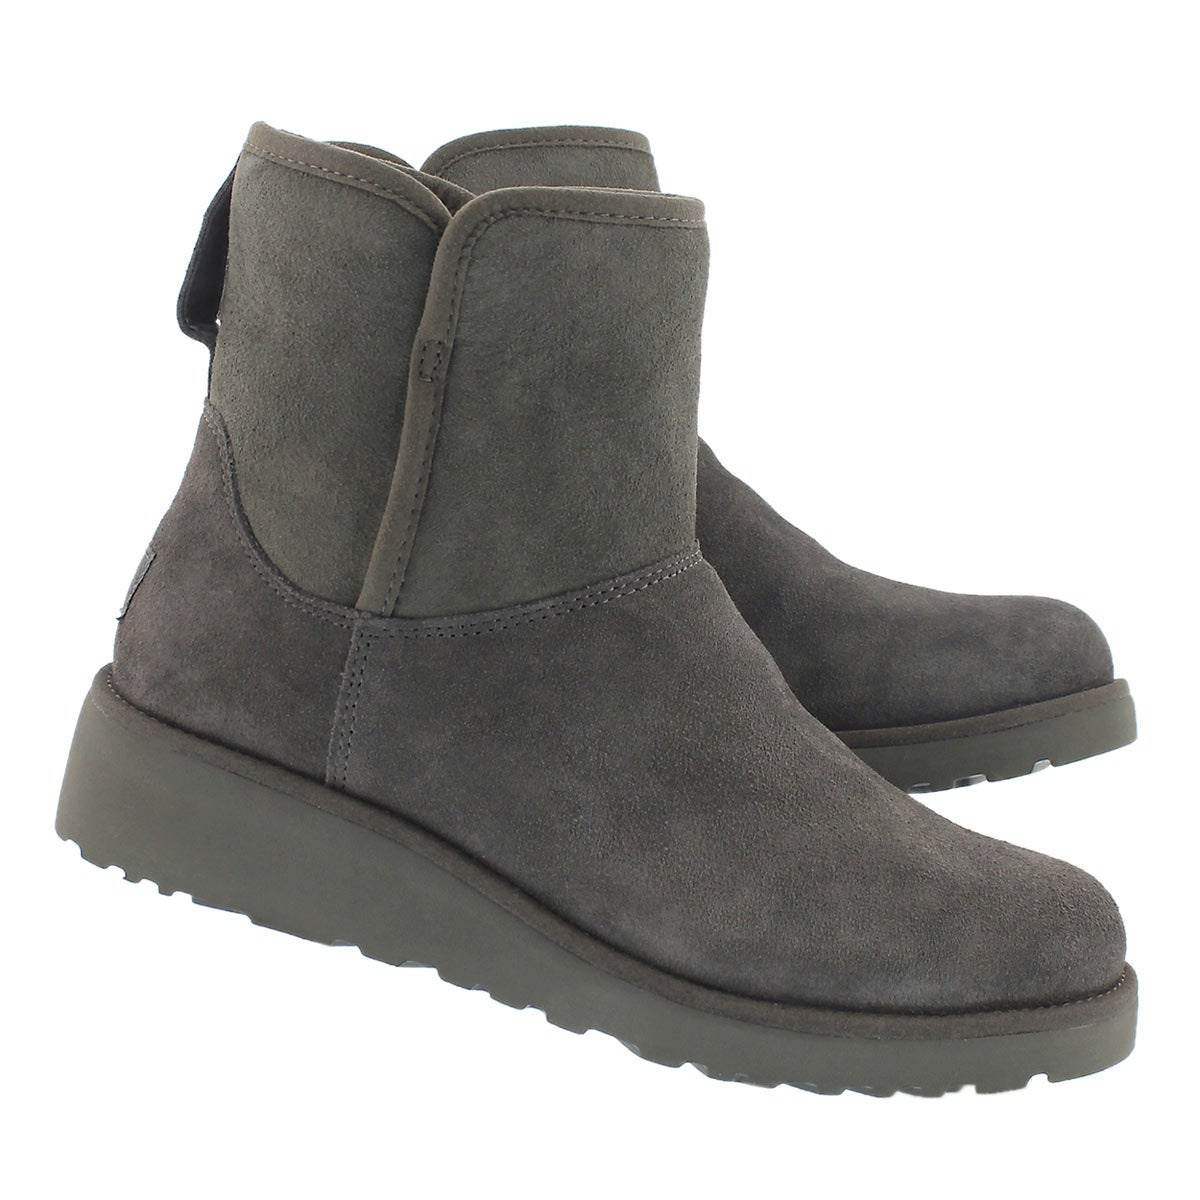 Lds Kristin grey wedge sheepskin boot